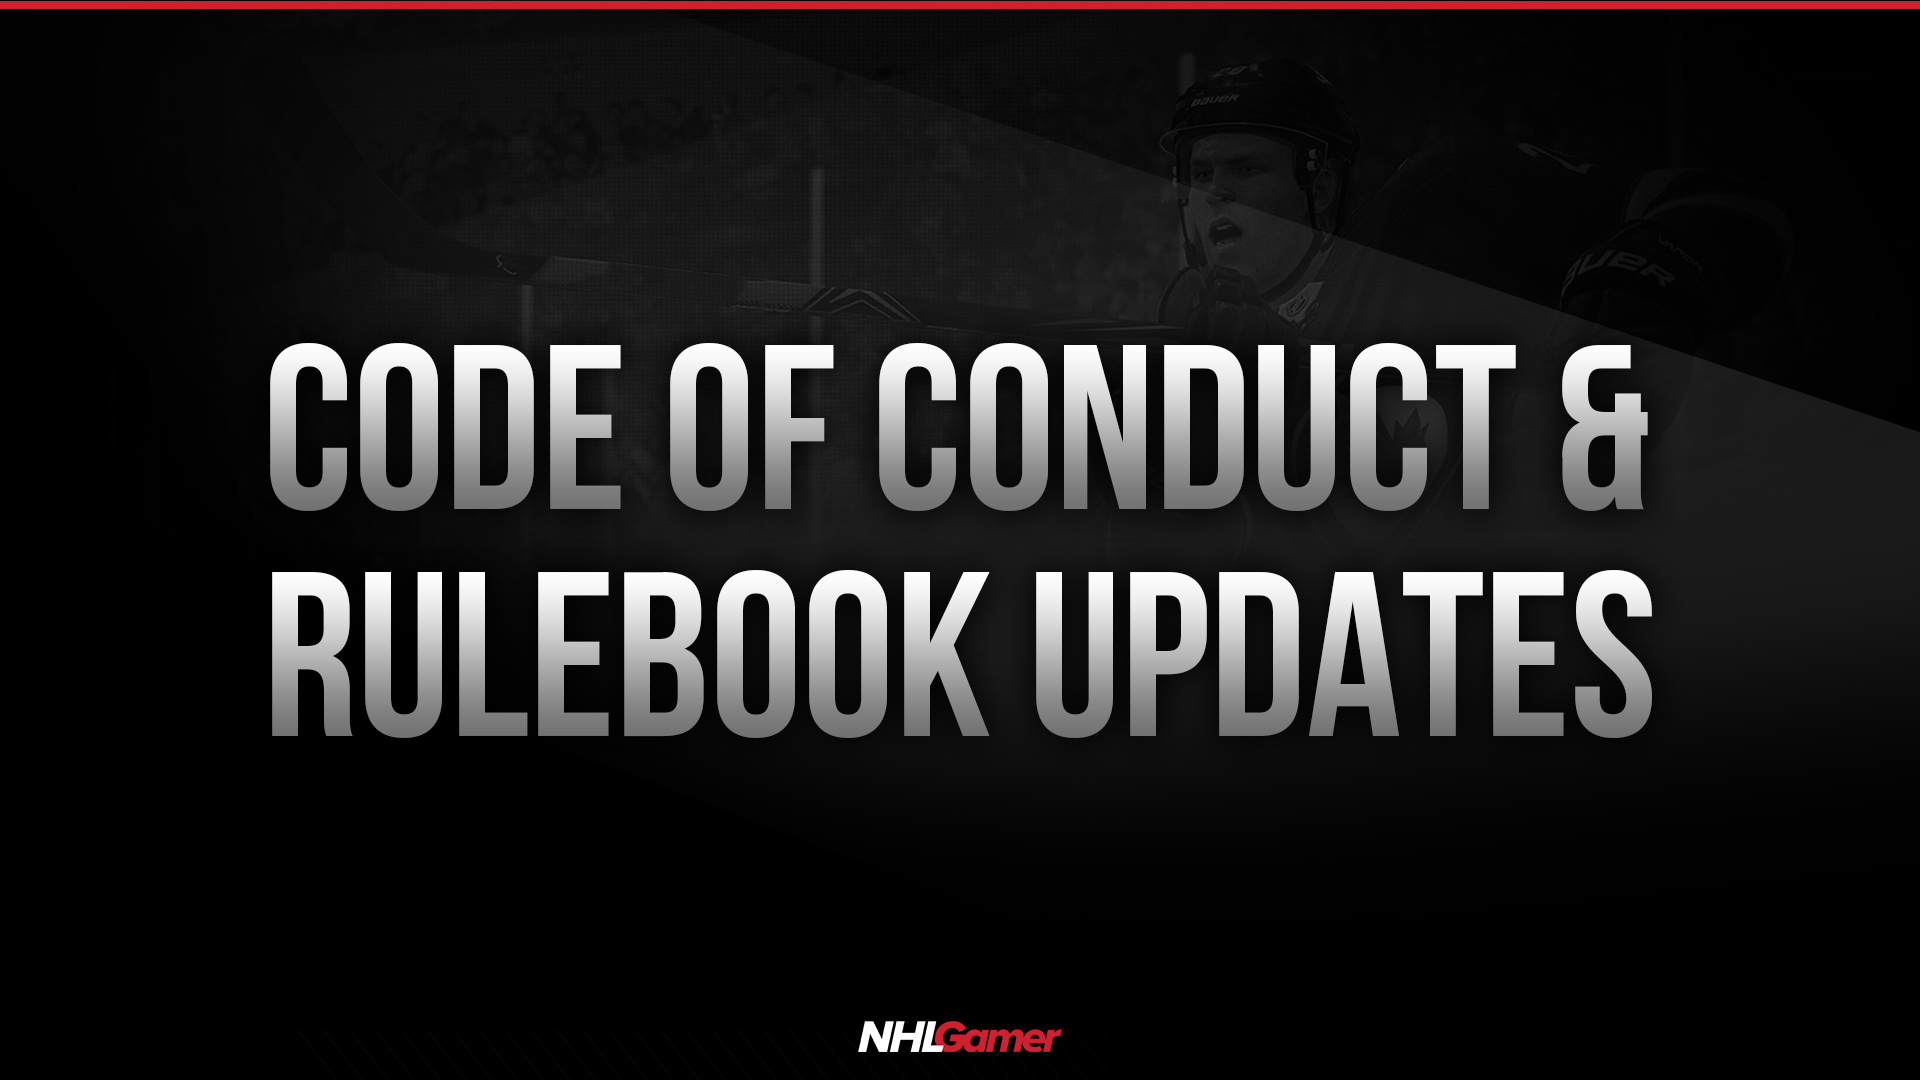 Code_of_conduct_and_rulebook_updates.jpg